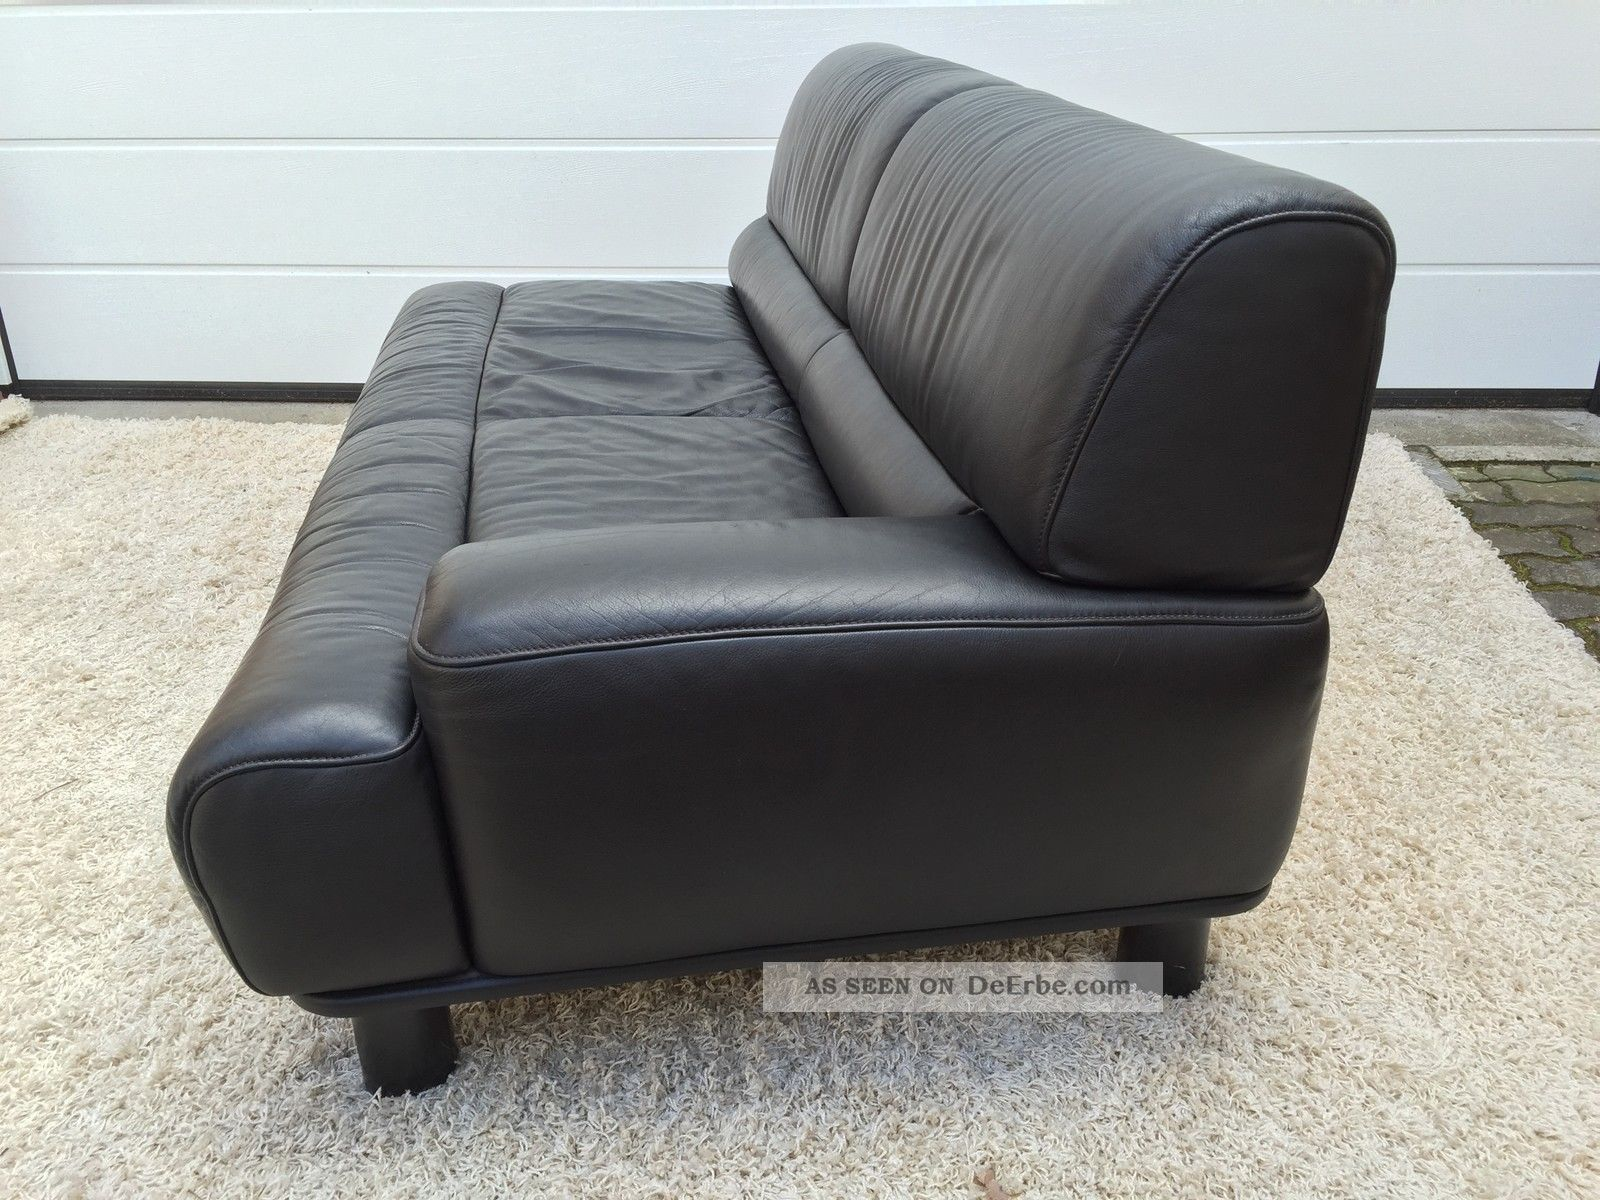 Lounge Sofa Daybed Liege De Sede Ds 18 Leder Leather Ära Kill 80 47 76 88 Chair 1970-1979 Bild